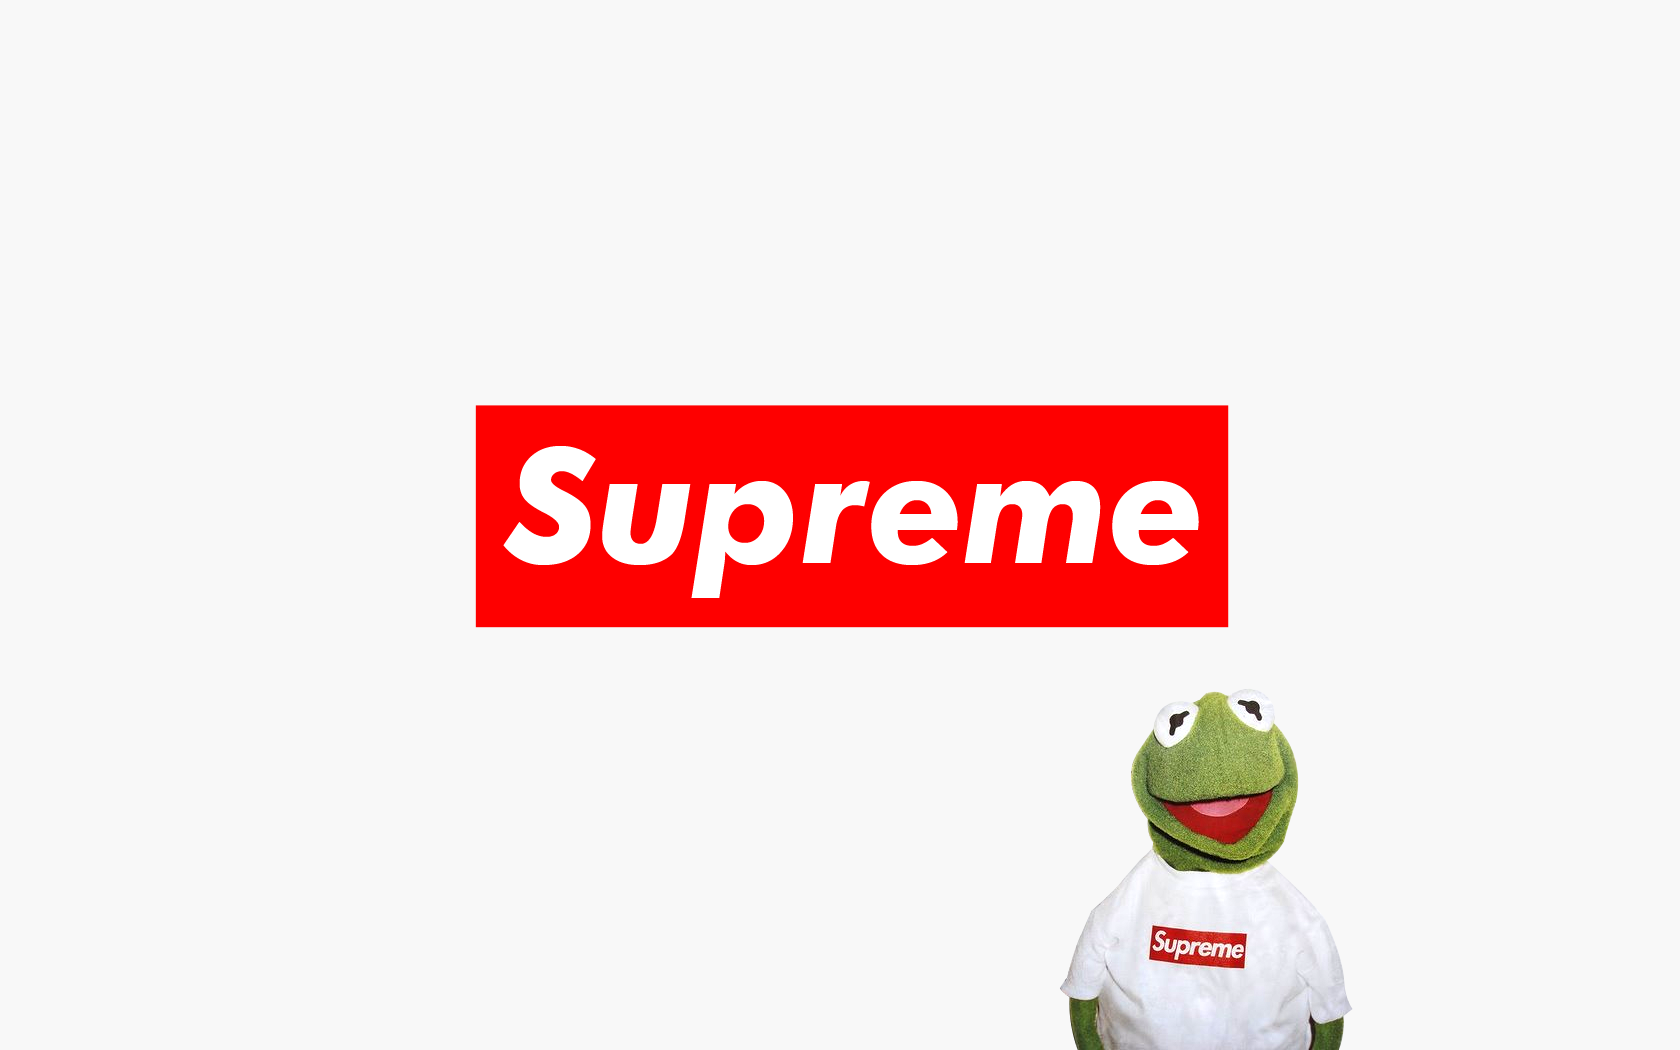 Supreme Wallpaper Images Pictures   Becuo 1680x1050